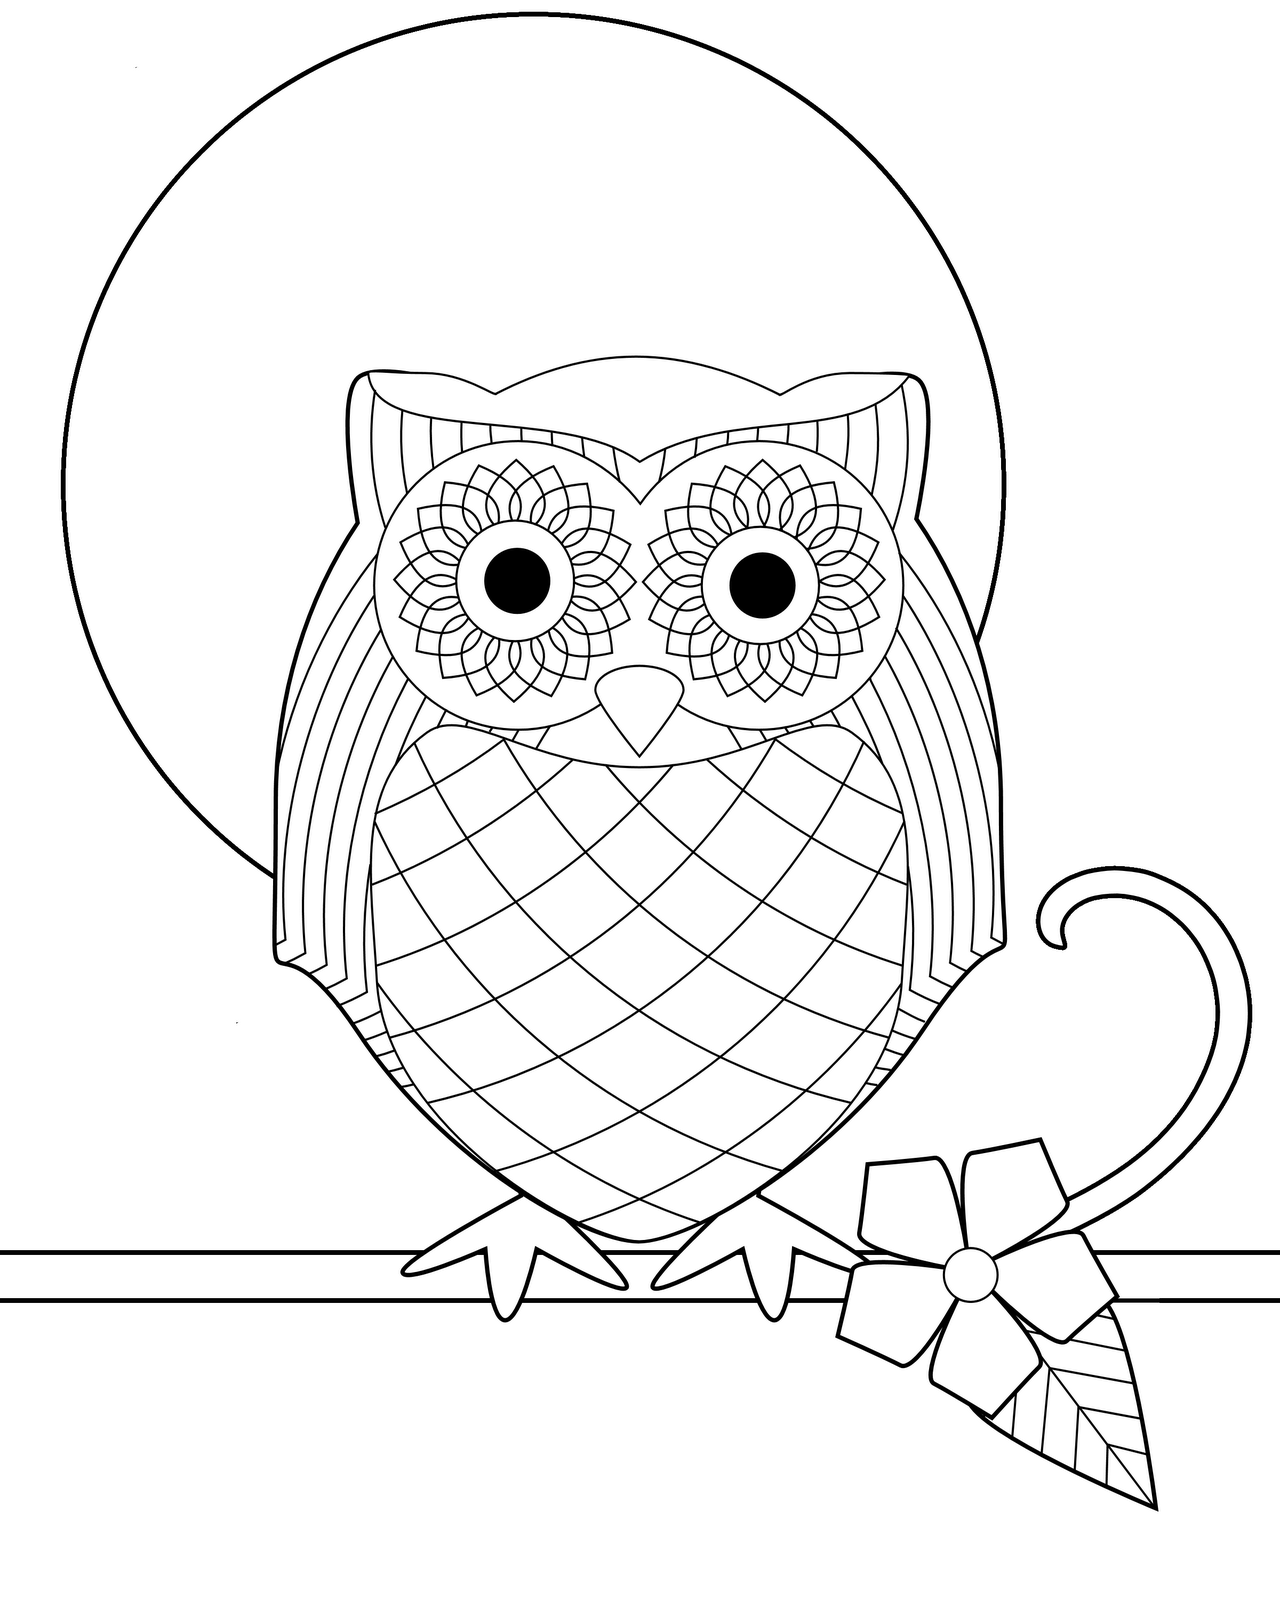 Owl Coloring Pages Beauteous Free Printable Owl Coloring Pages For Kids